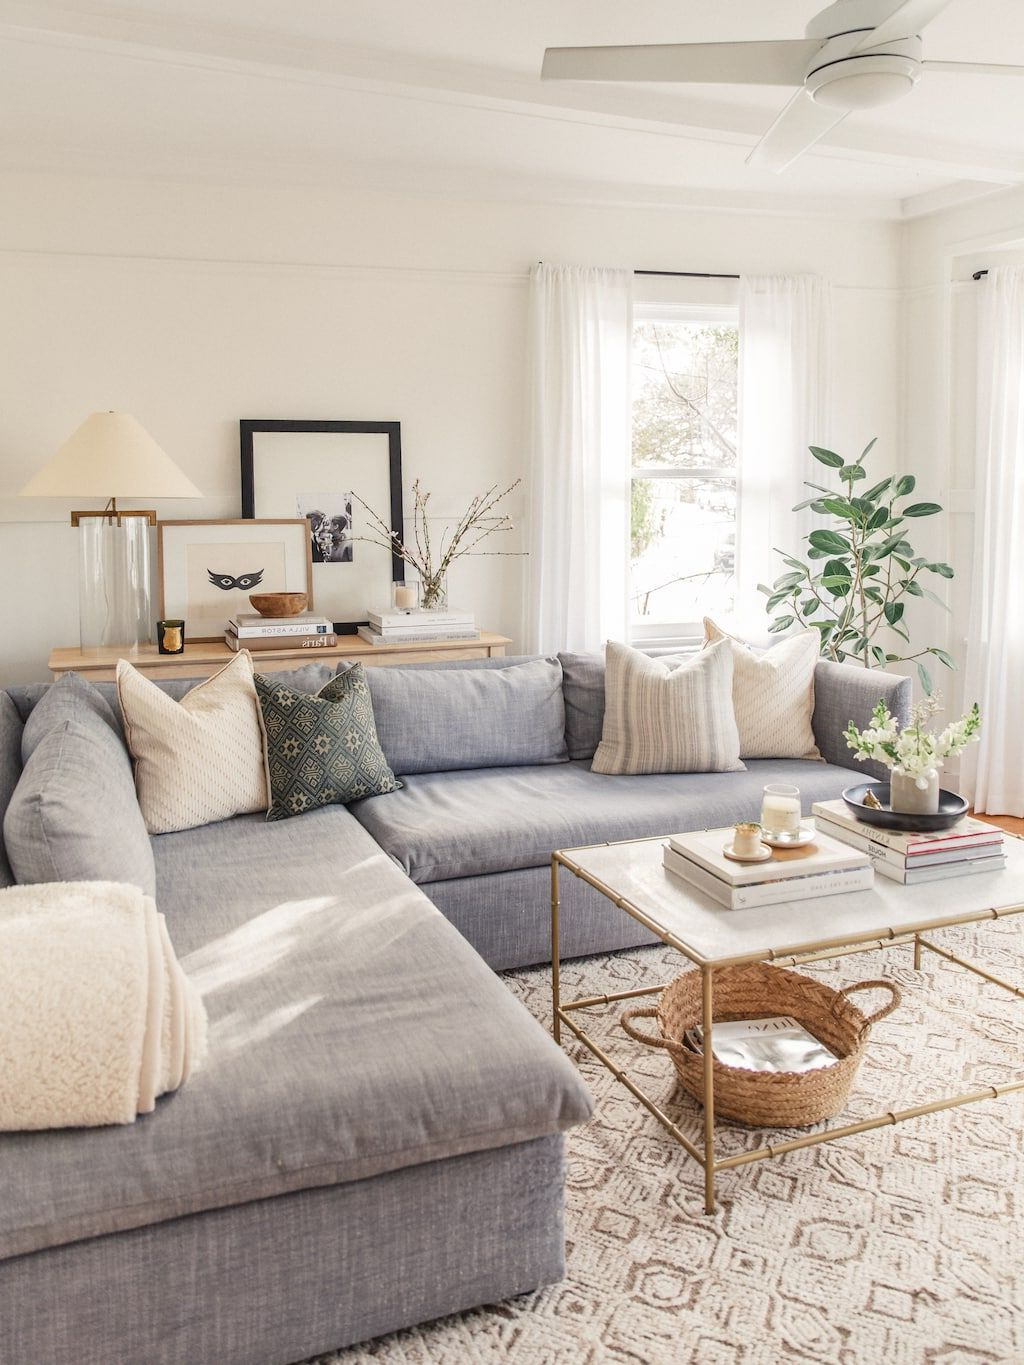 Home Decorating Trends 2020 With Images Small